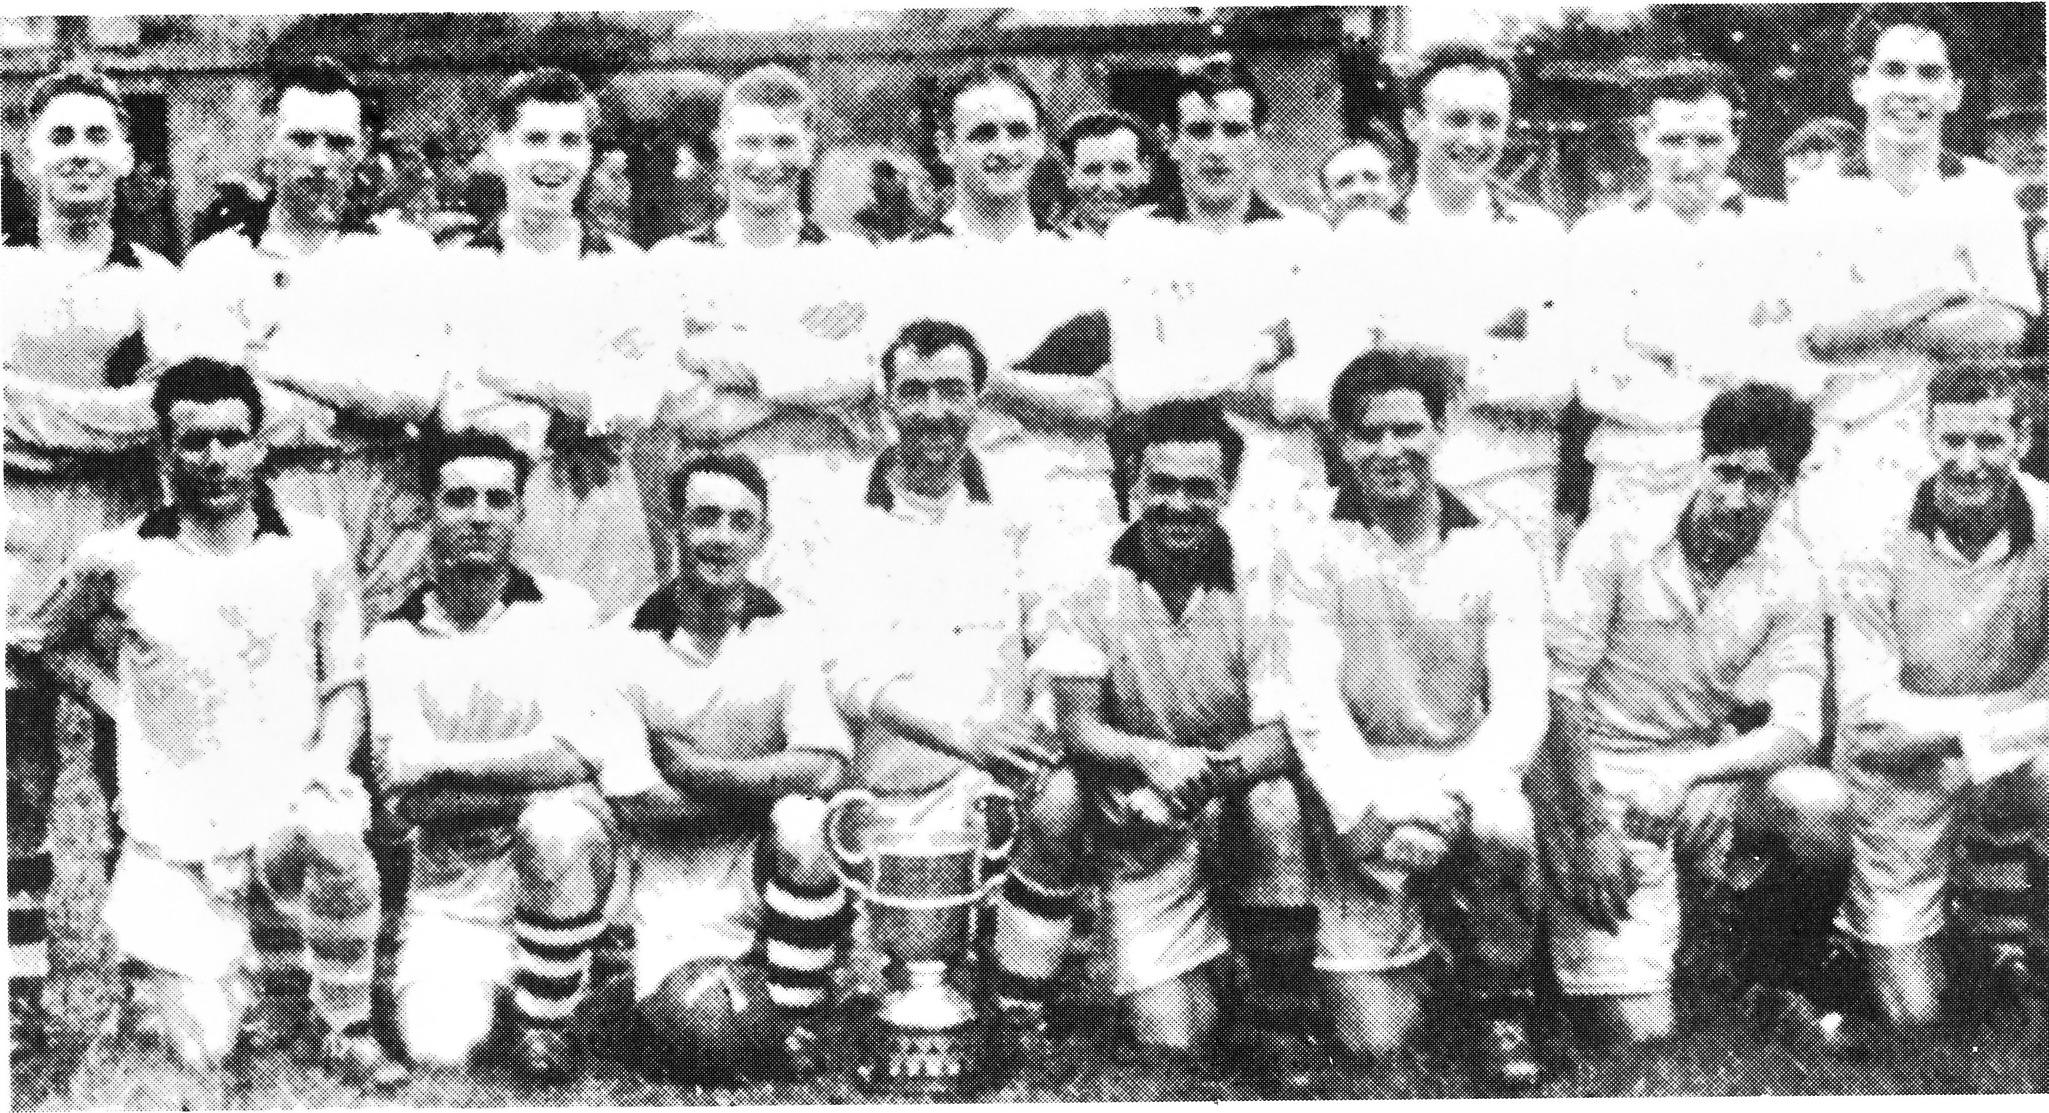 1954 - The first ever team to win a three-in-a-row title in Tyrone